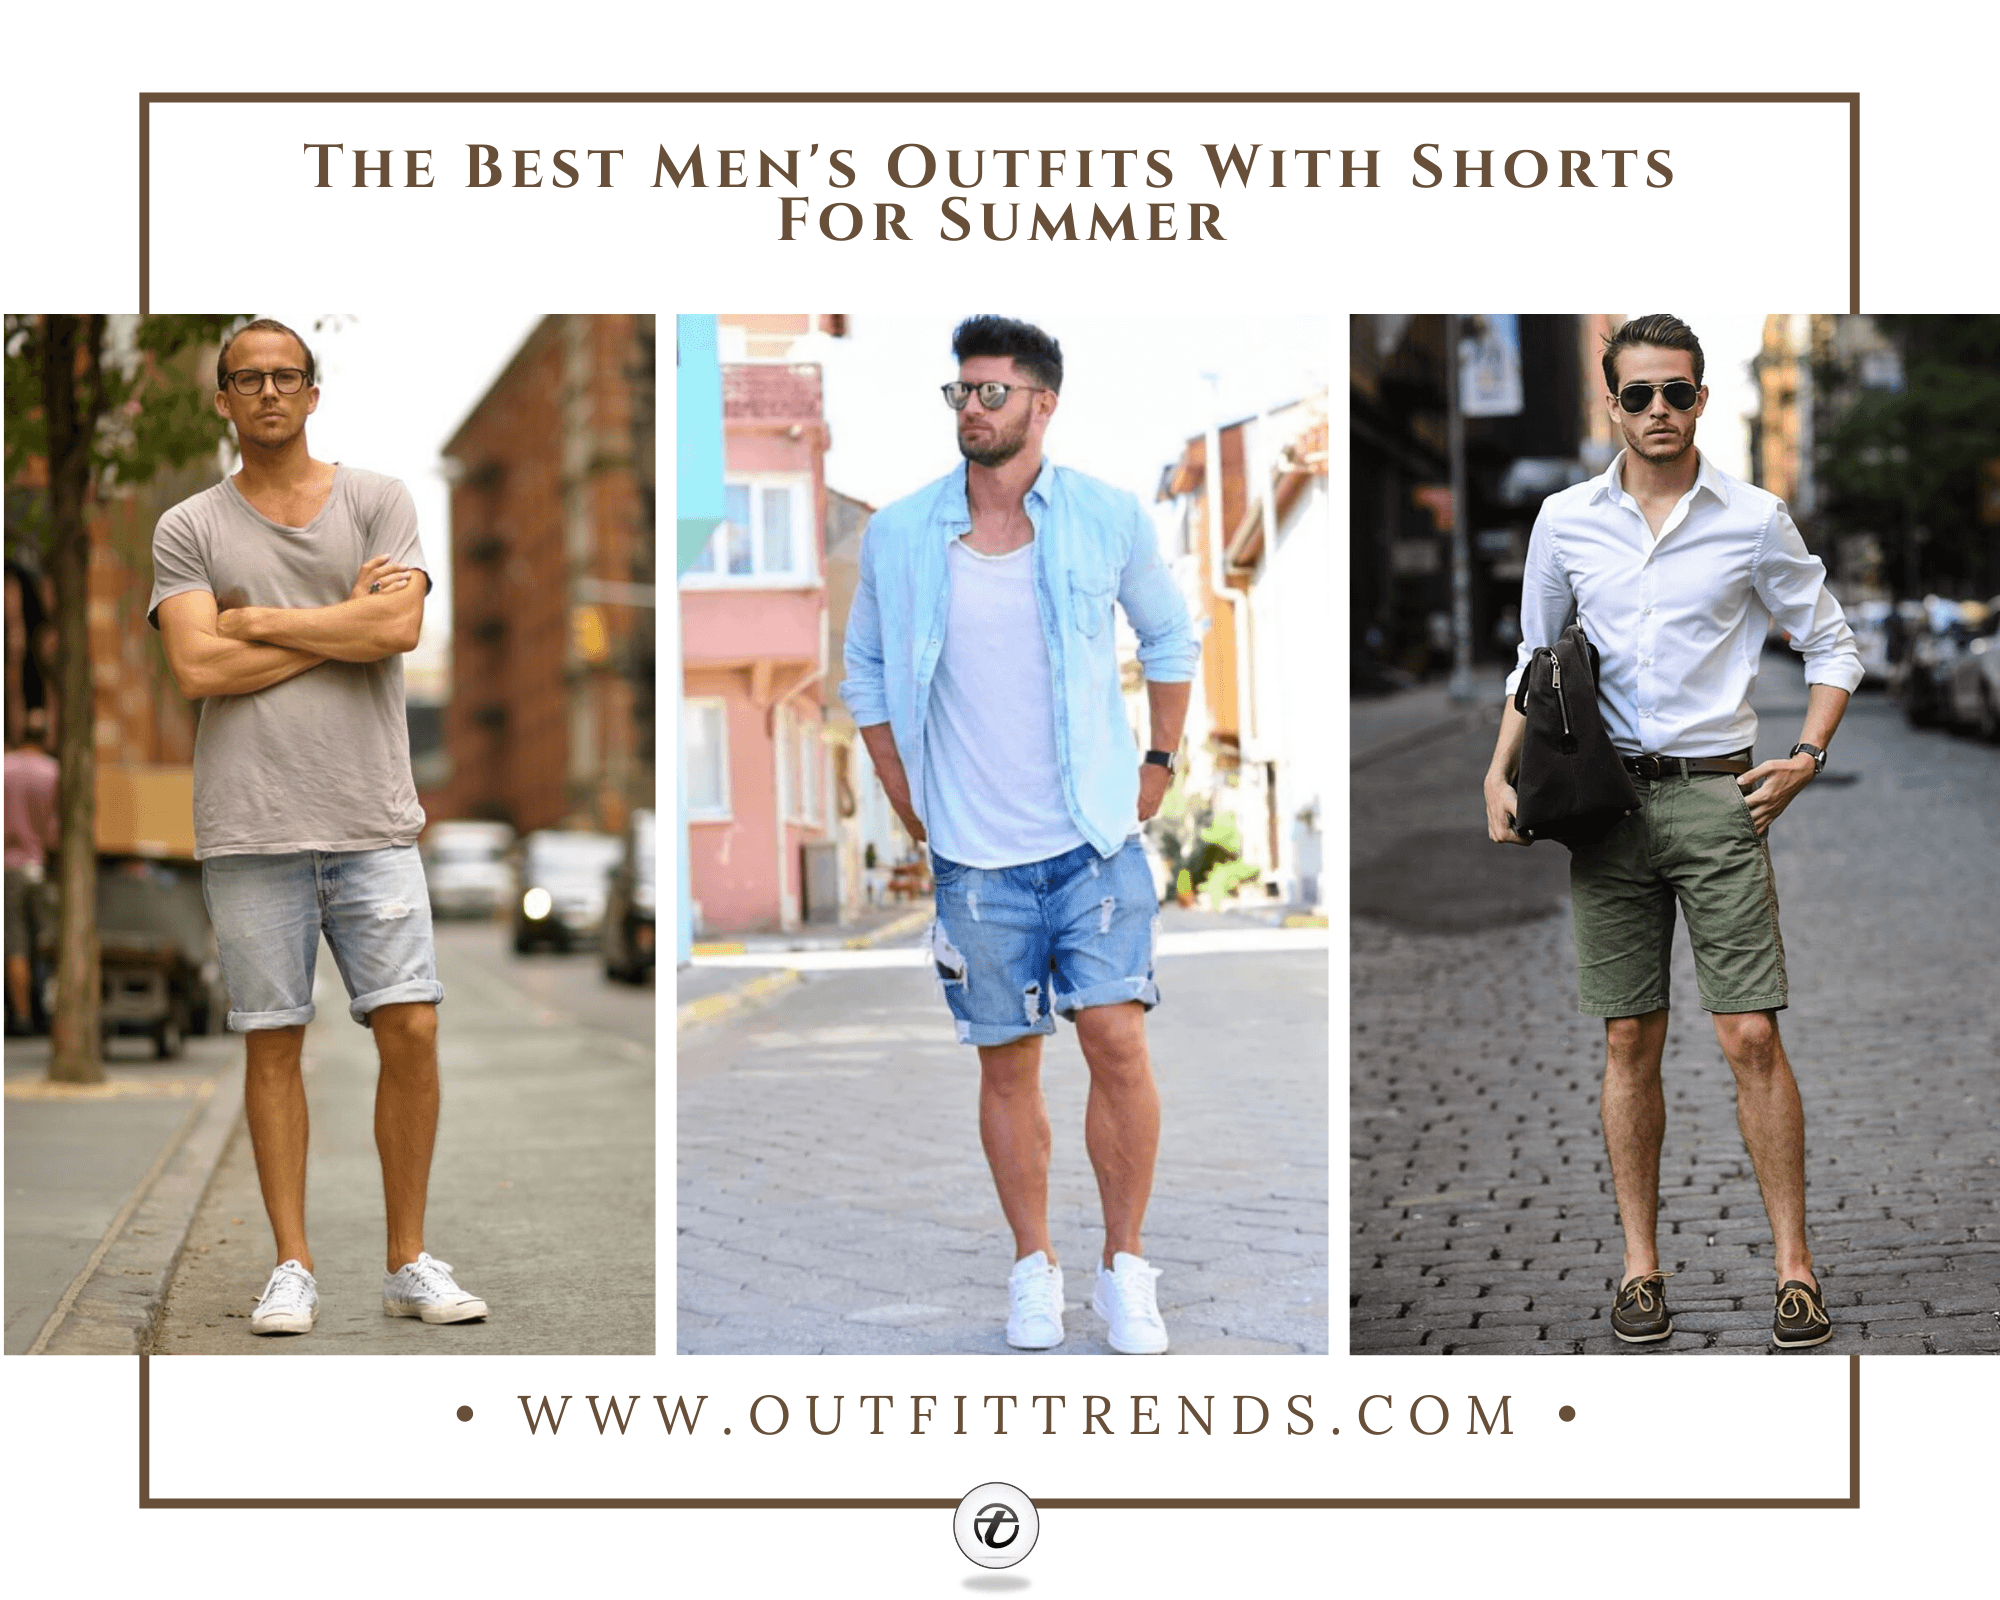 23 Stylish Men's Outfits with Shorts For Summer 2021